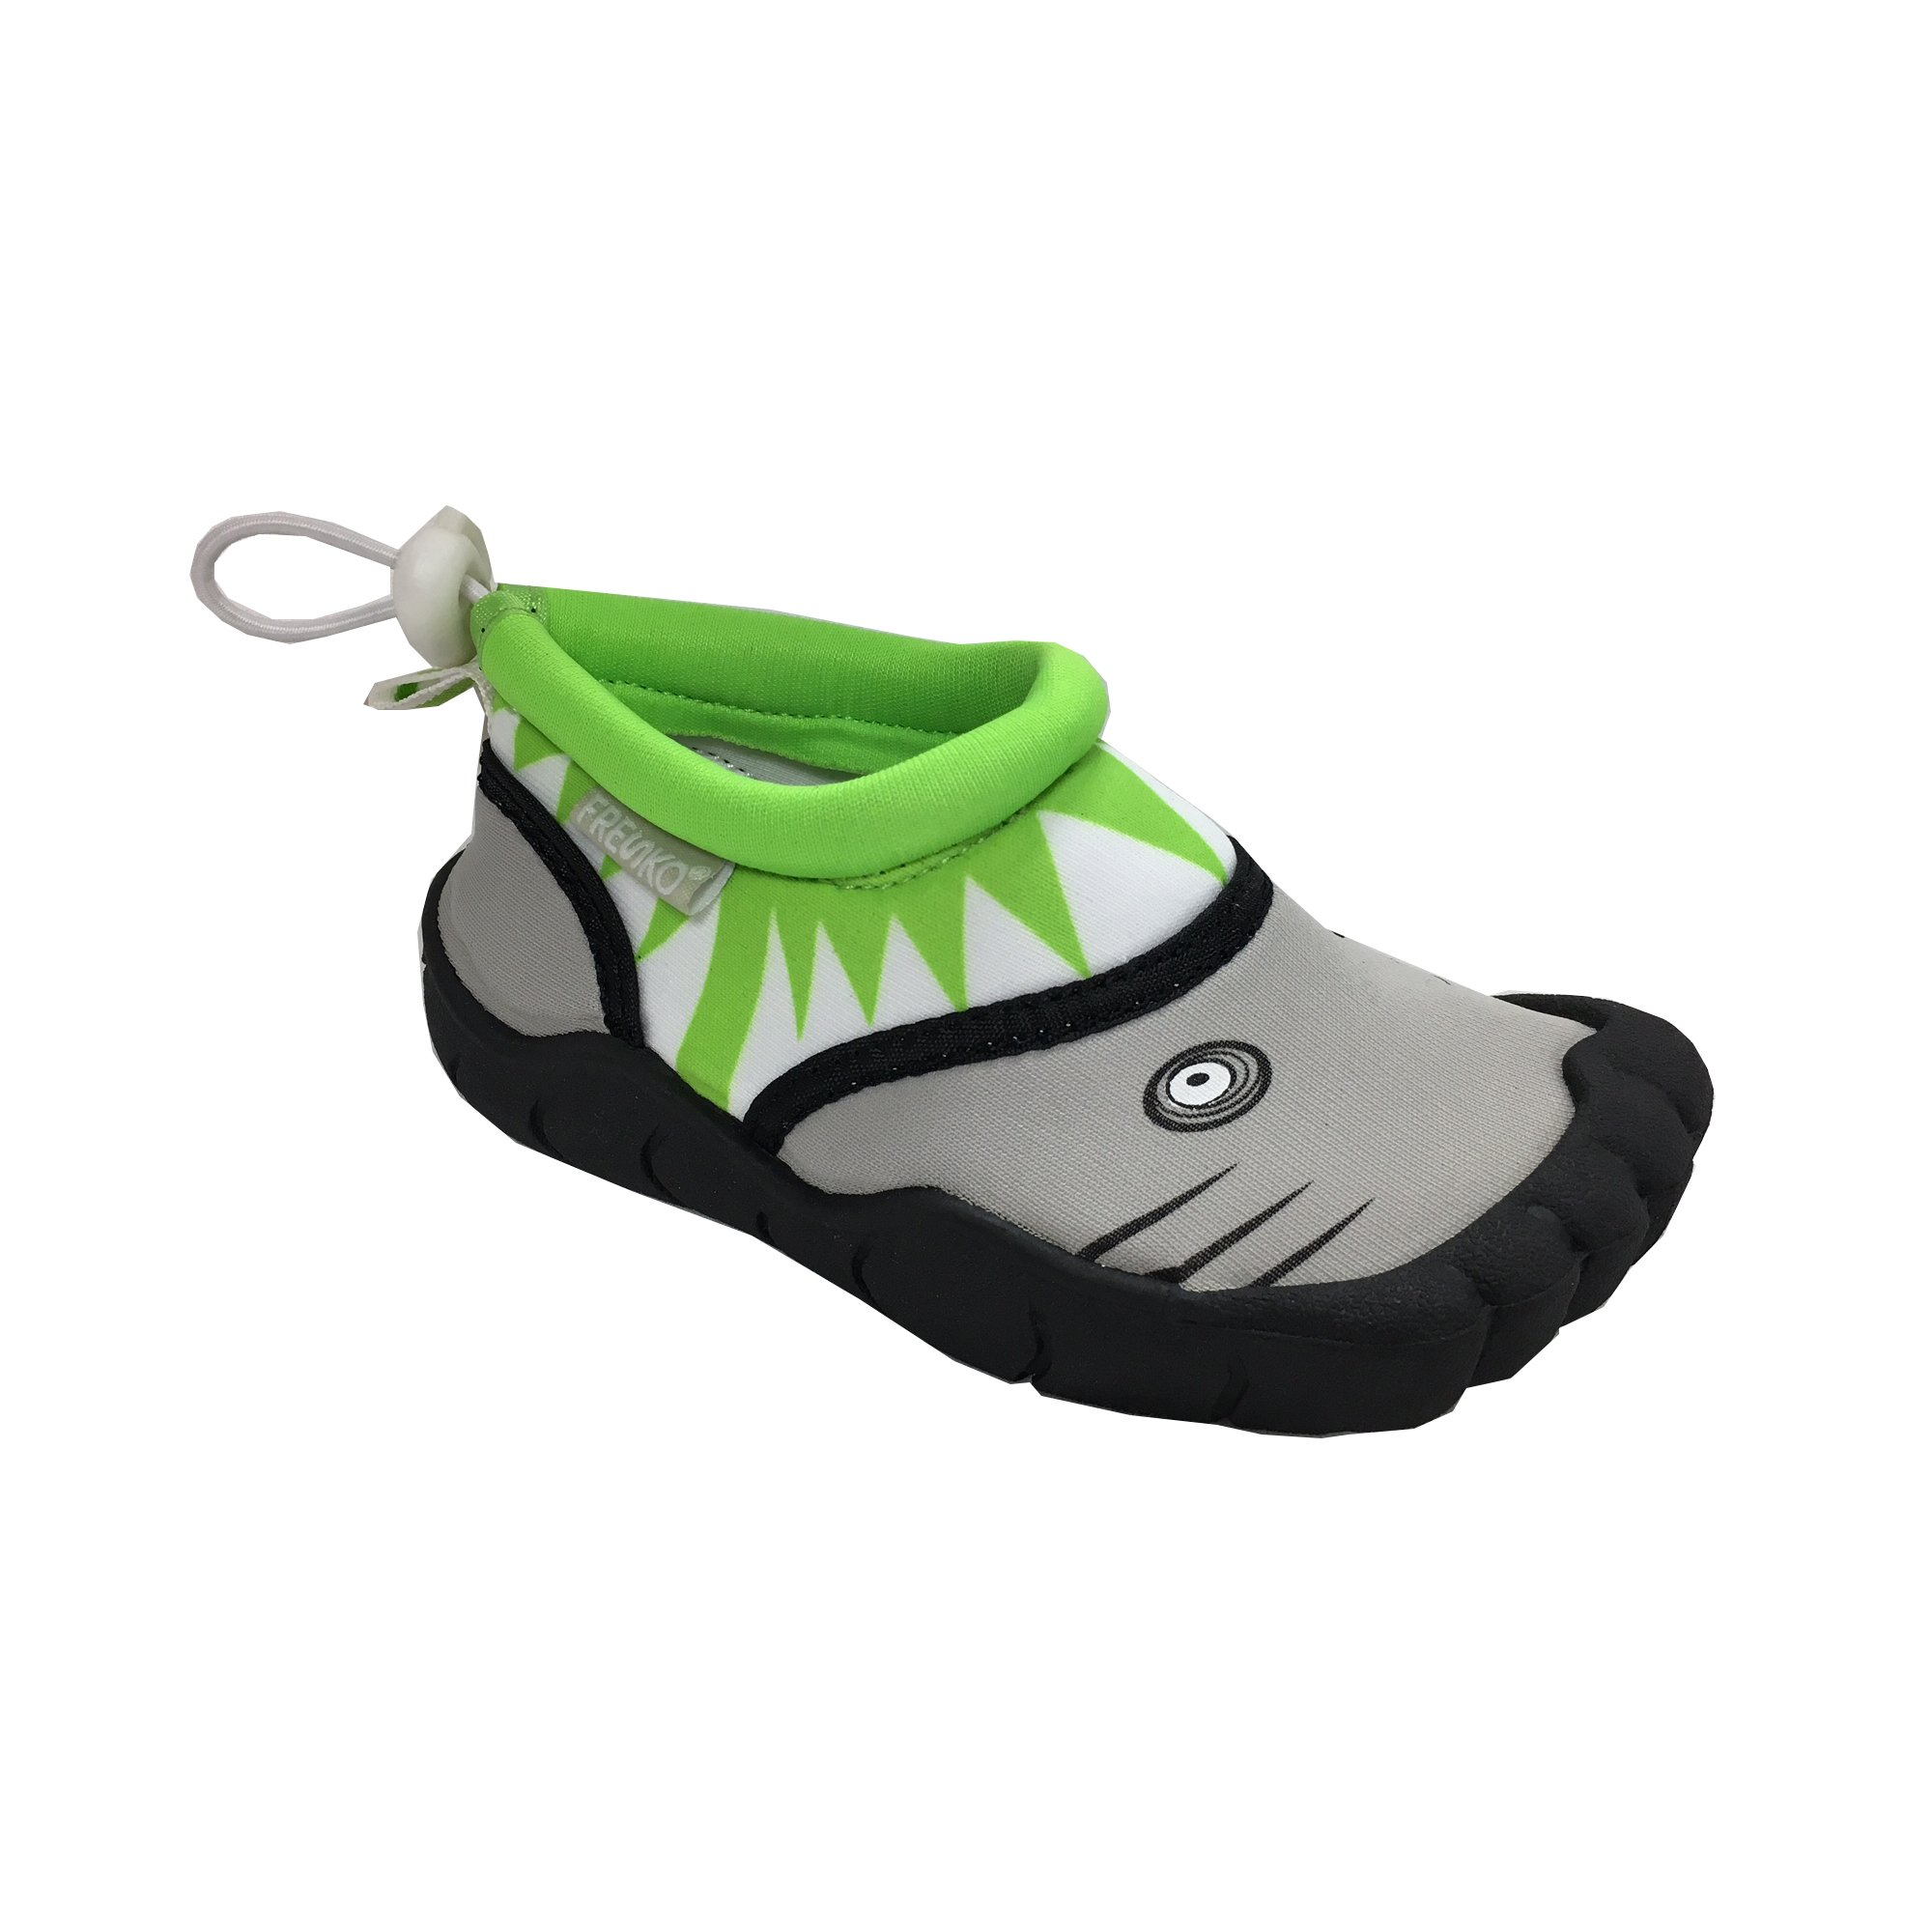 ab52bf639104 Galleon - Fresko Toddler Shark Water Aqua Shoes With Toes